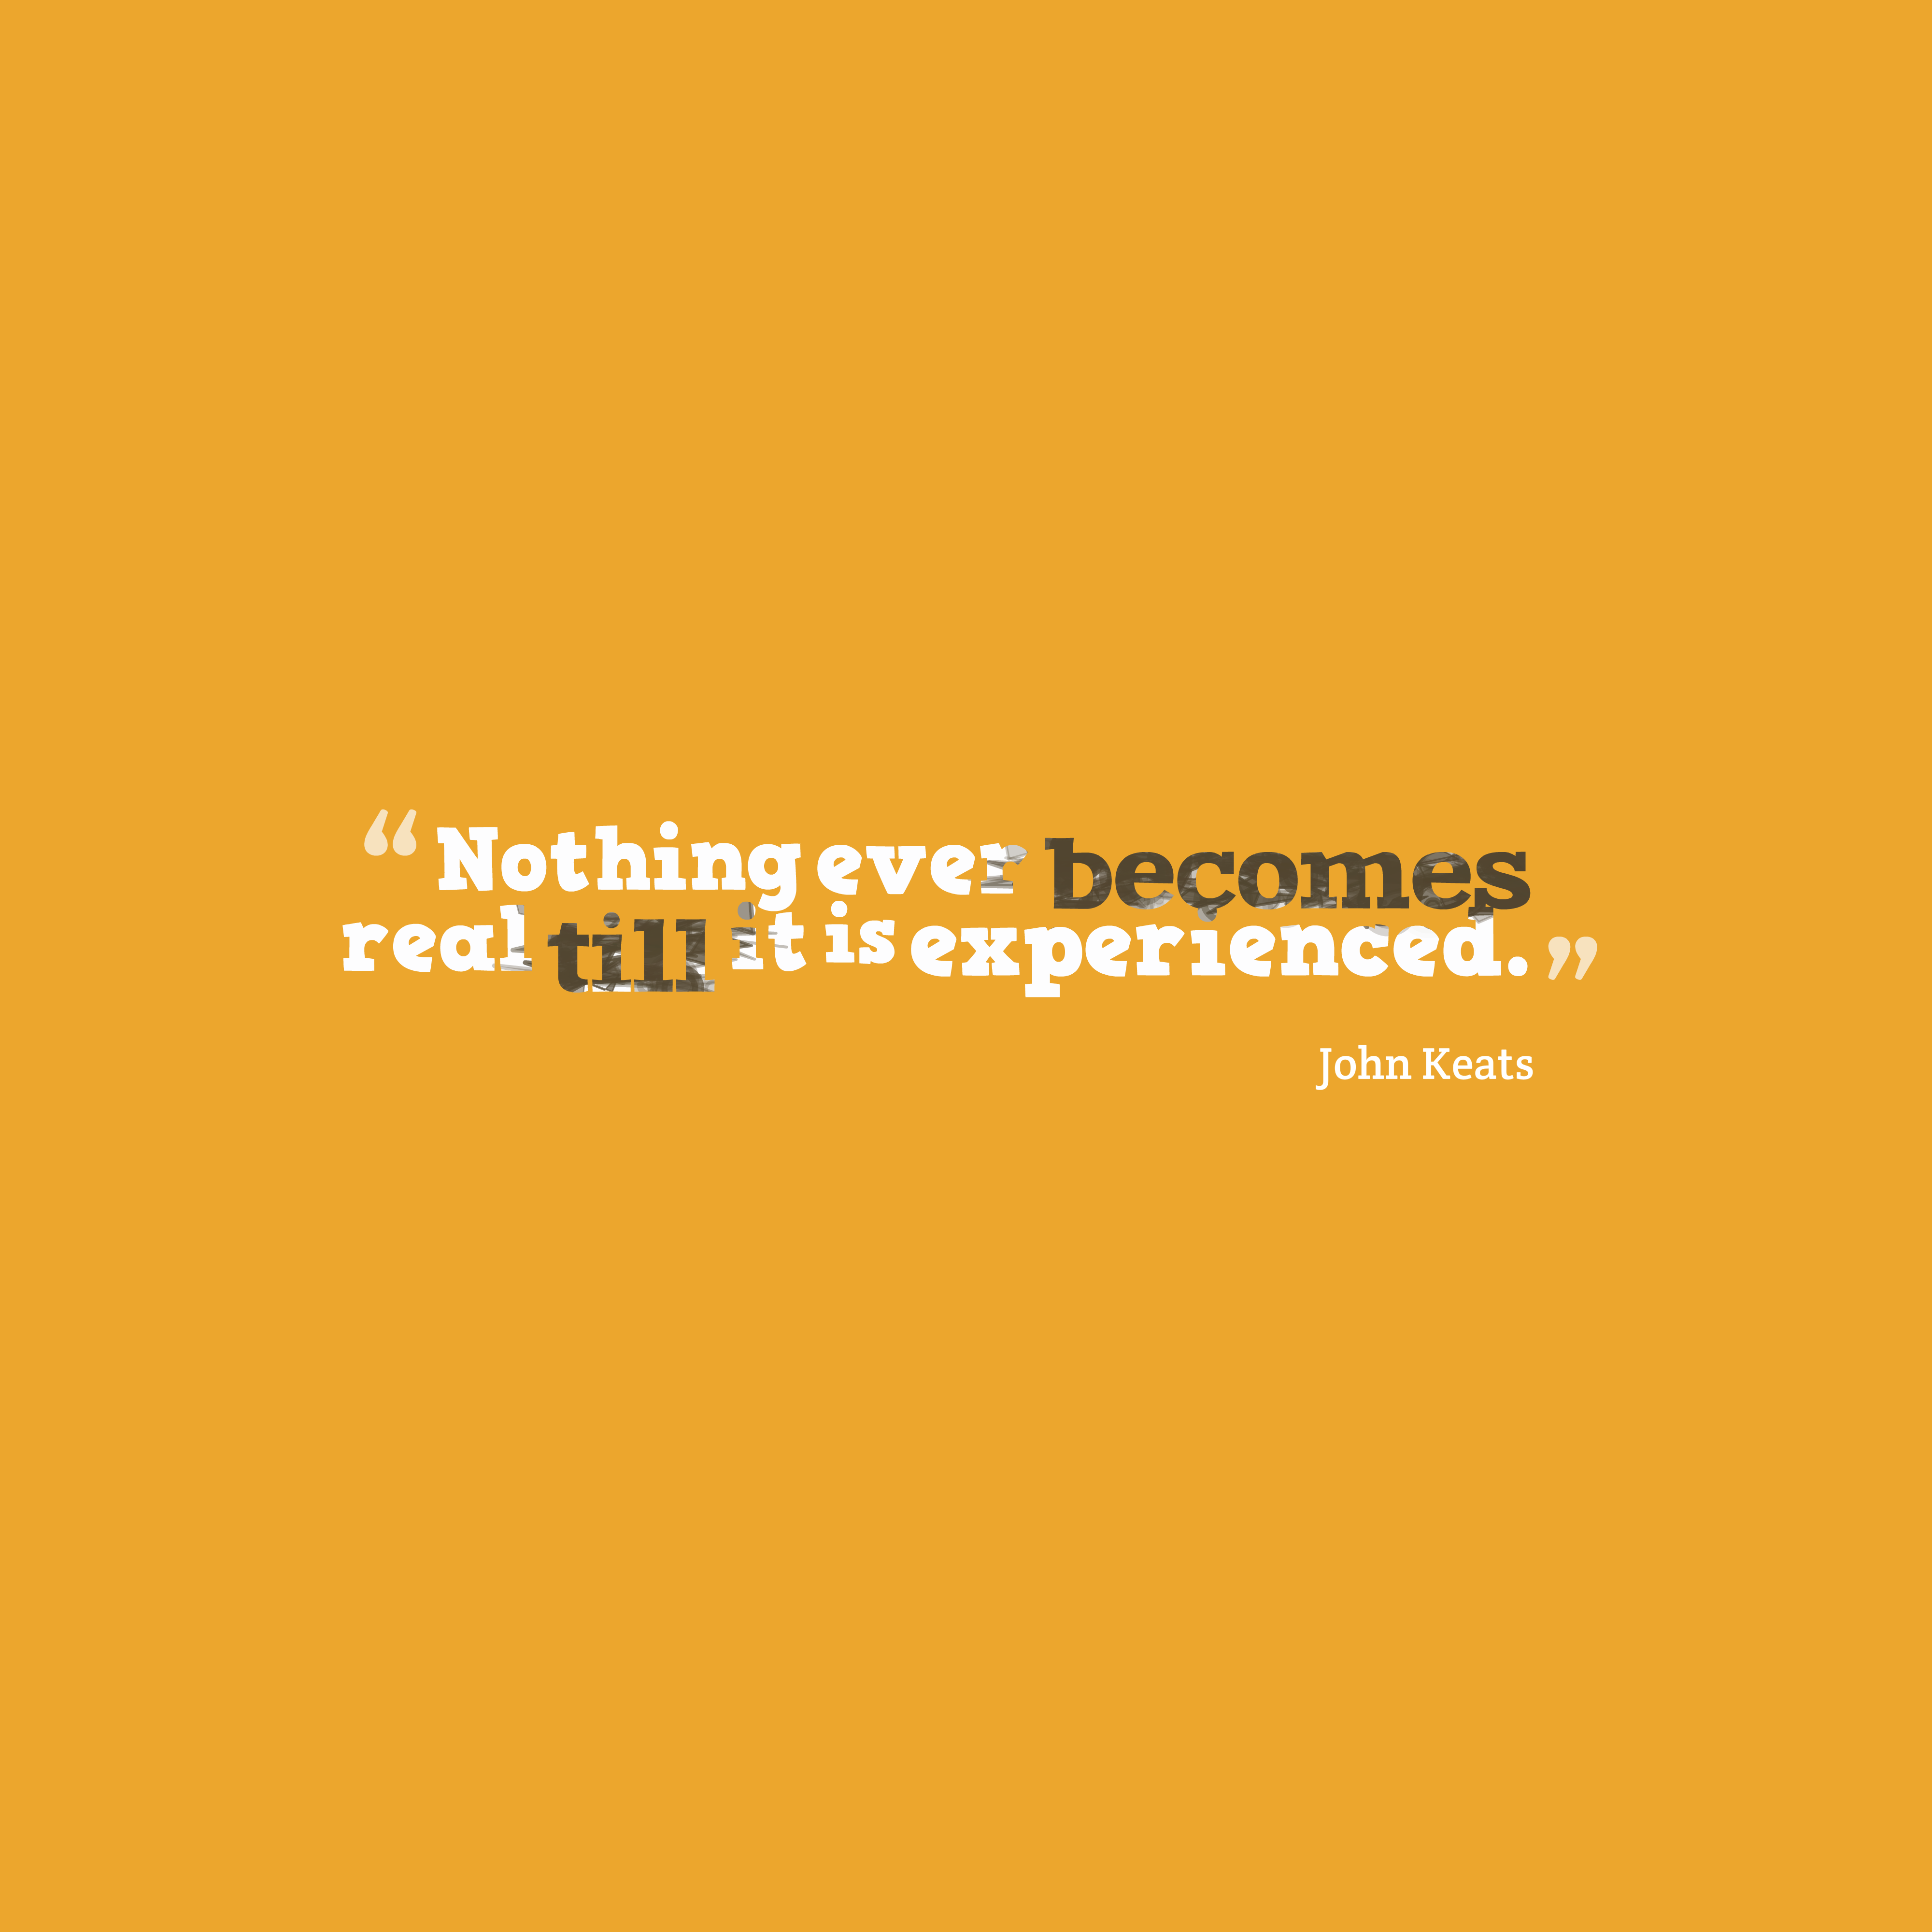 Quotes About Experience: Get High Resolution Using Text From John Keats Quote About